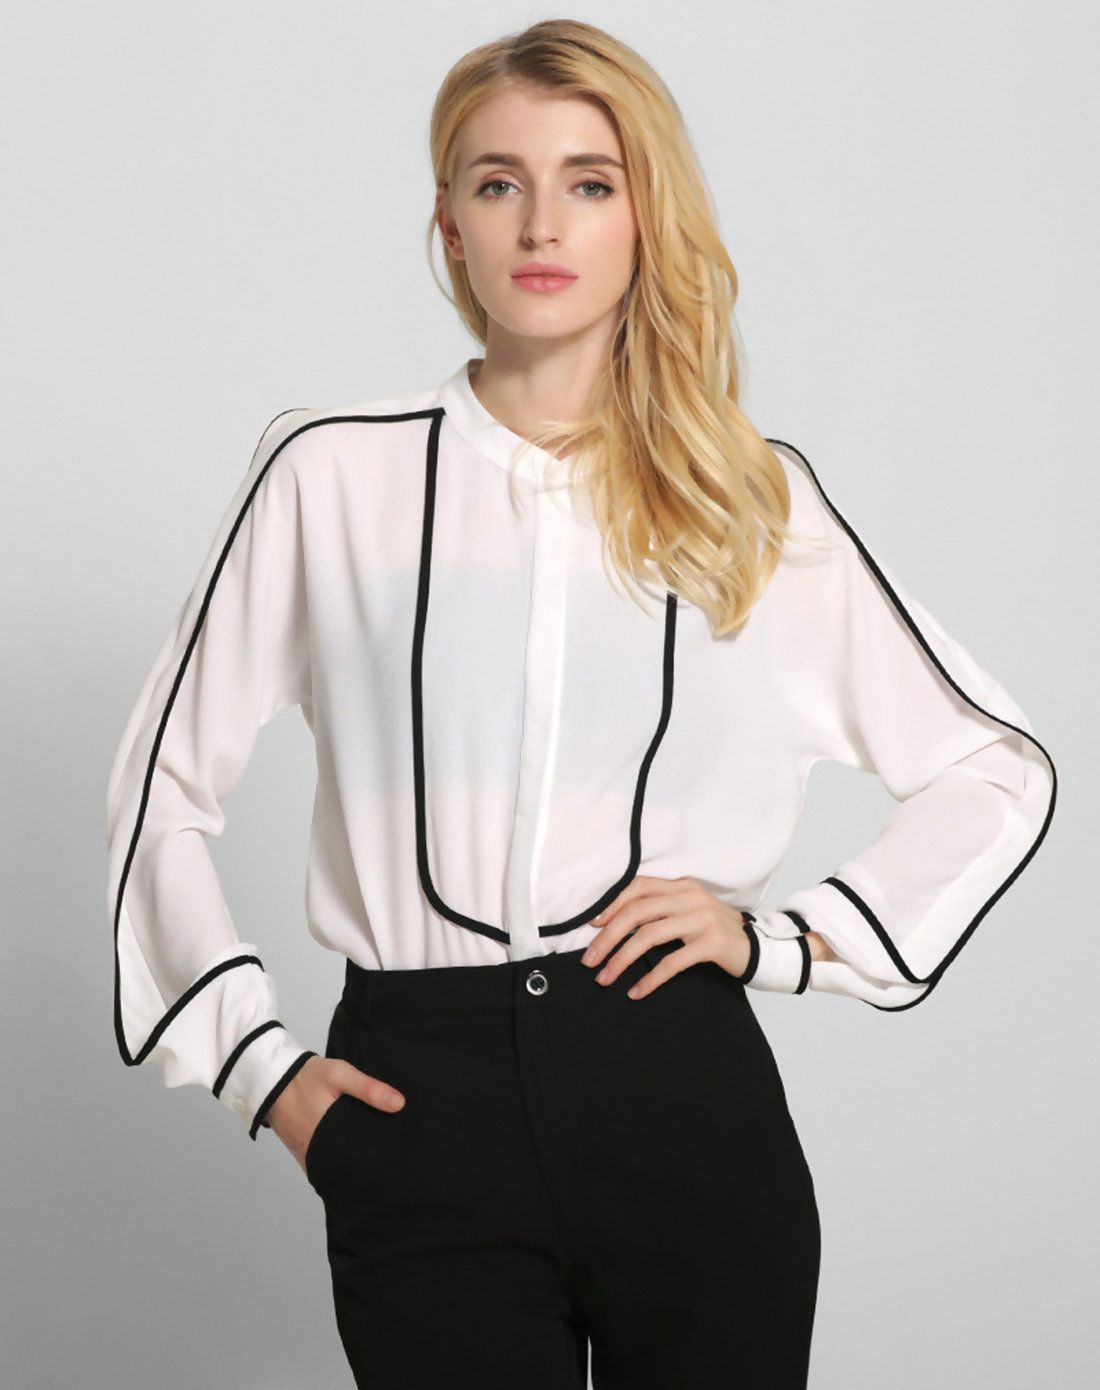 99019a031b48c  VIPme White Stand Collar Long Sleeve Shirt ❤ Get more outfit ideas and  style inspiration from fashion designers at VIPme.com.